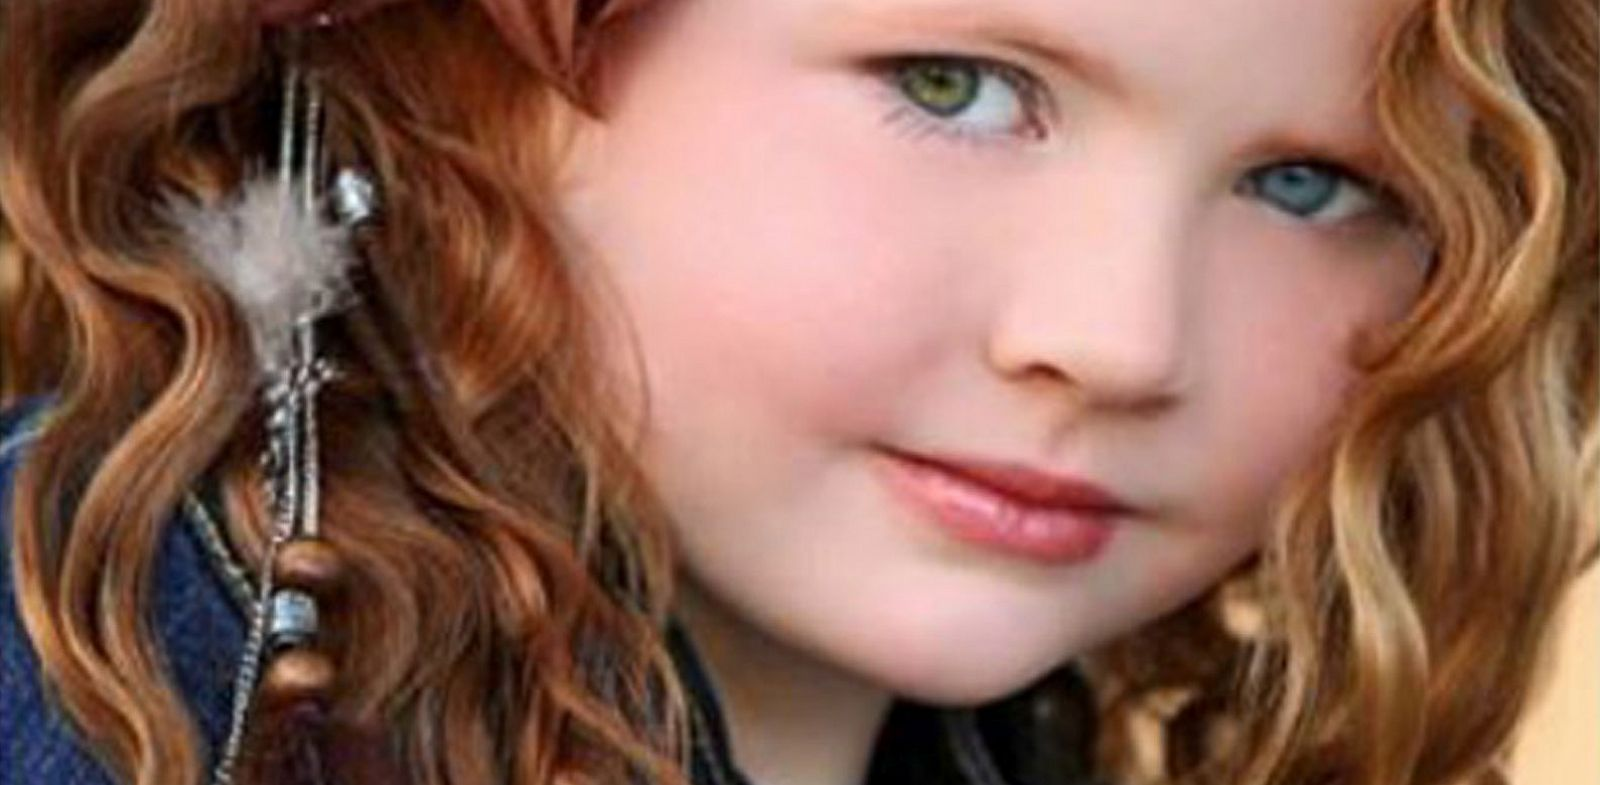 PHOTO: Piper Parks, 6, competes in two or three beauty pageants a month.